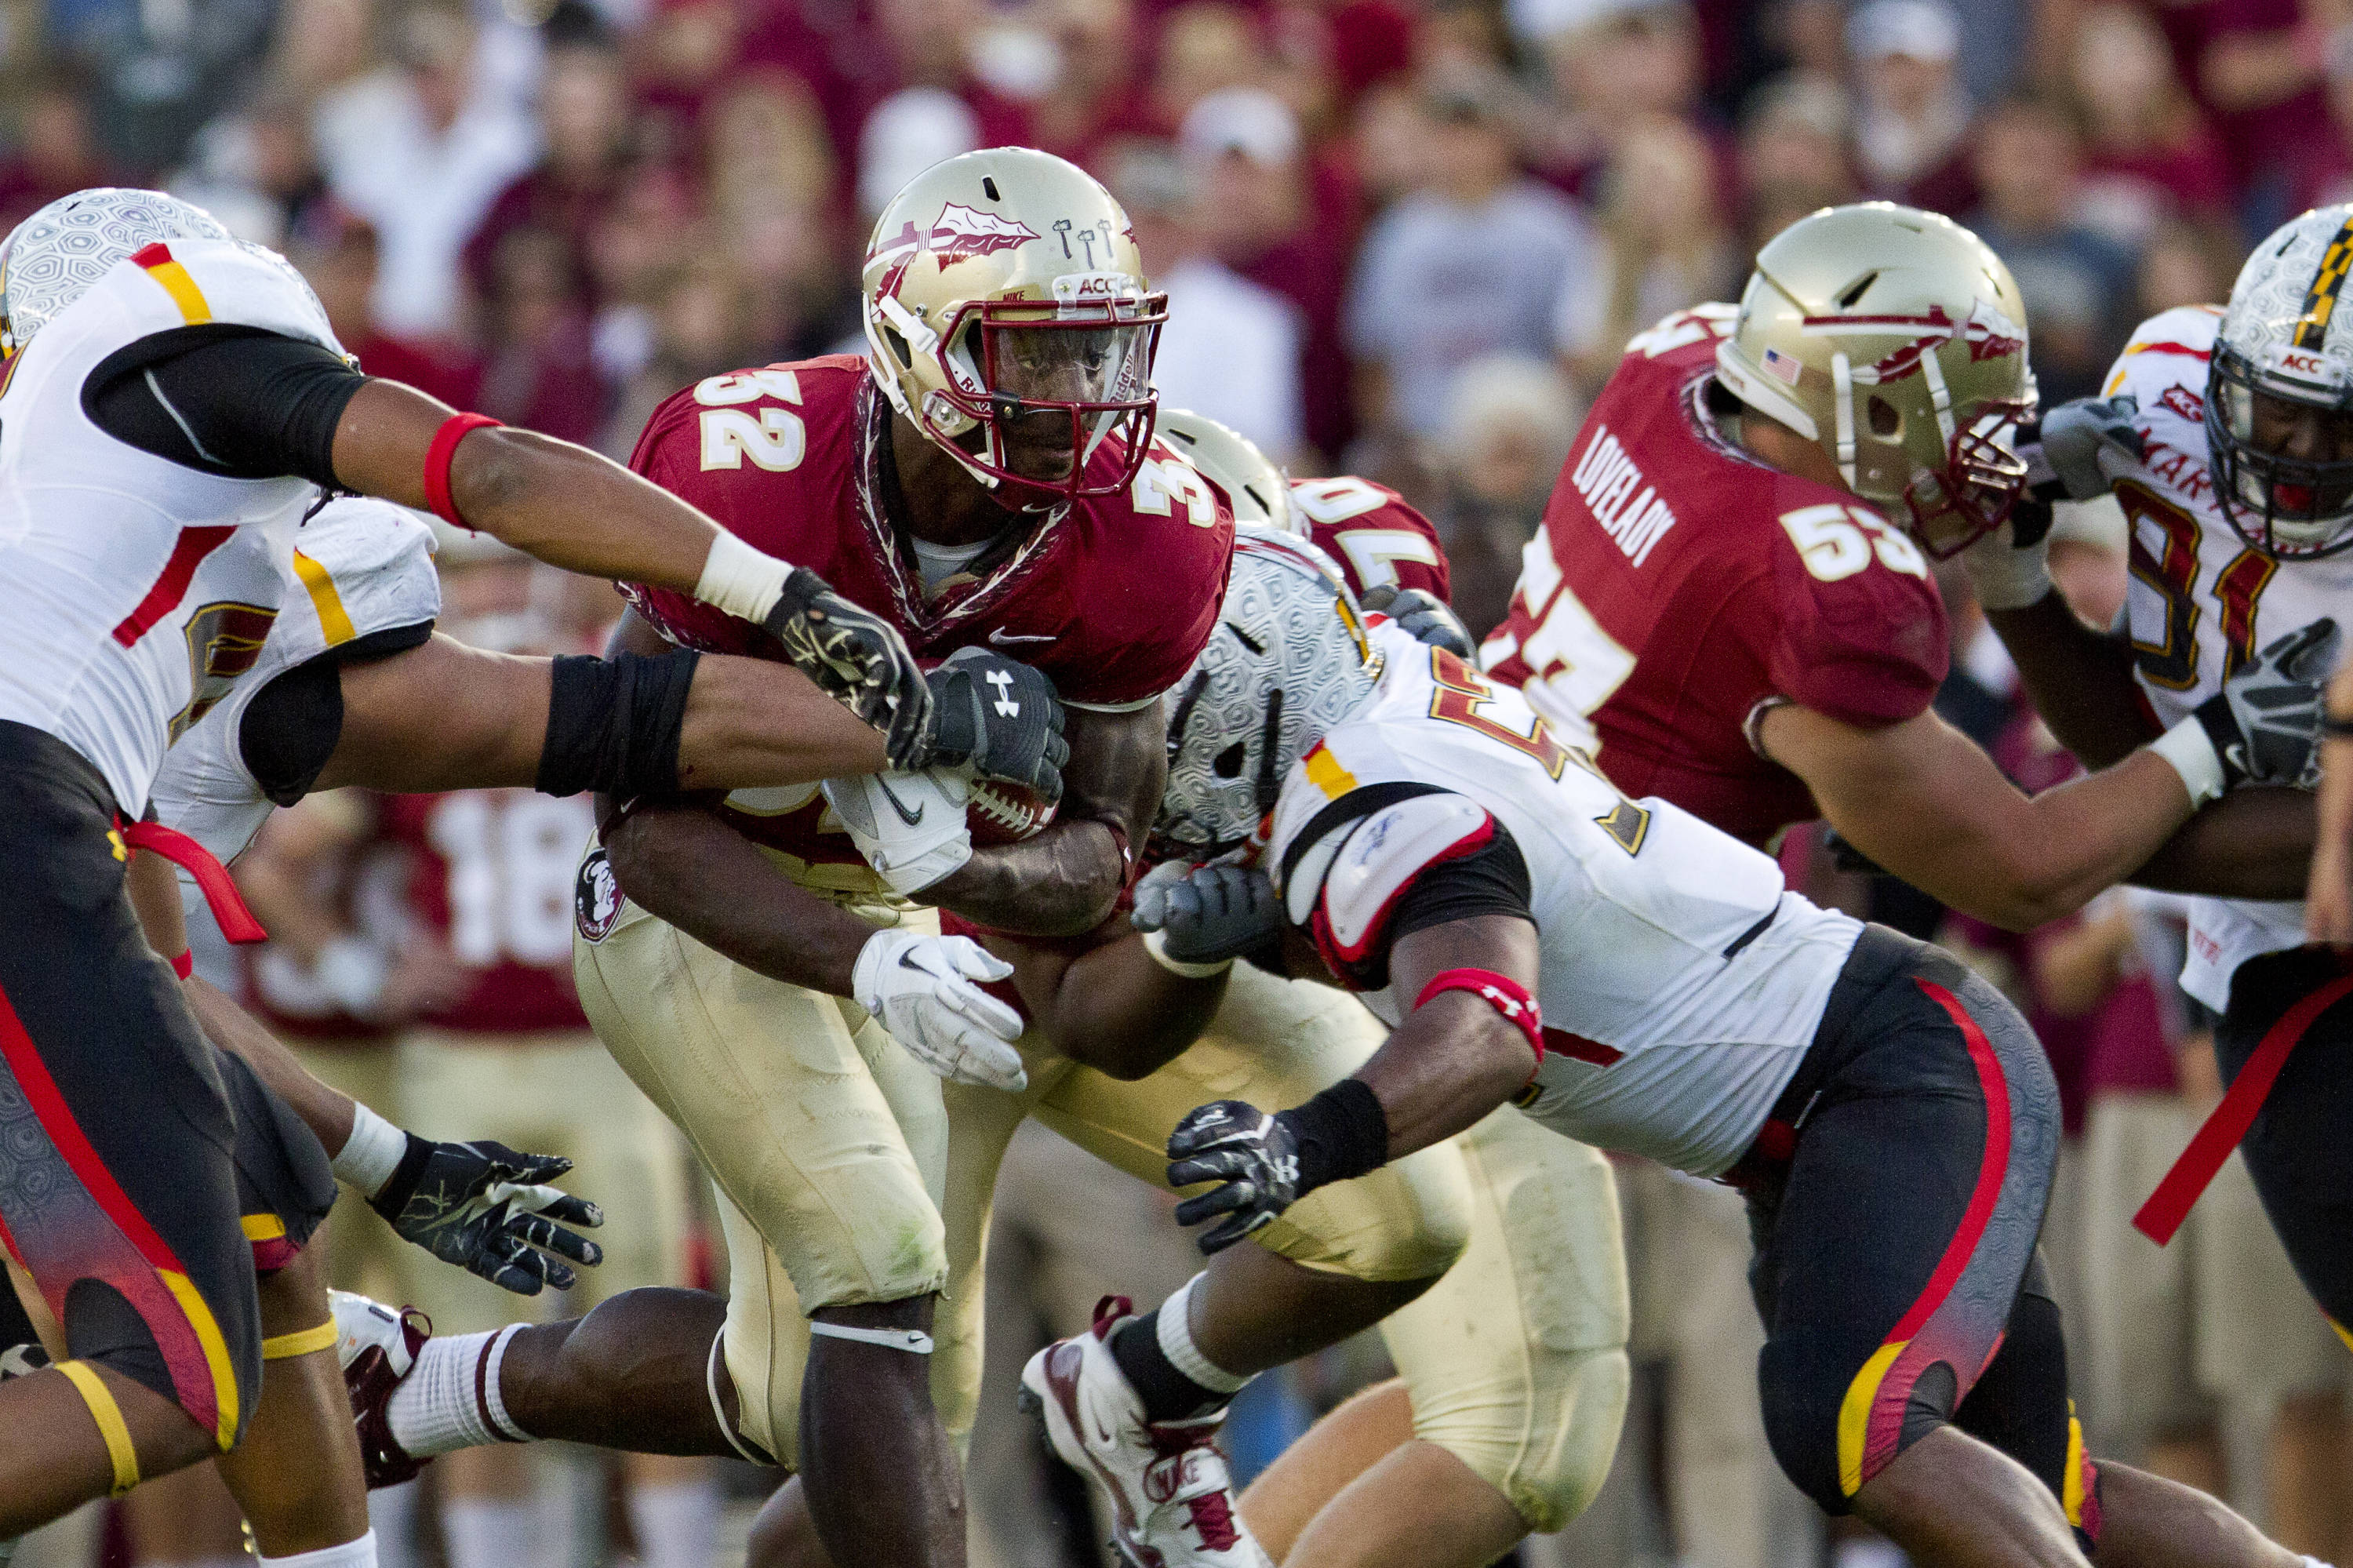 Jr. Wilder James (32) runs the ball through Maryland defenders during the football game against Maryland in Tallahassee, Florida on October 22, 2011.